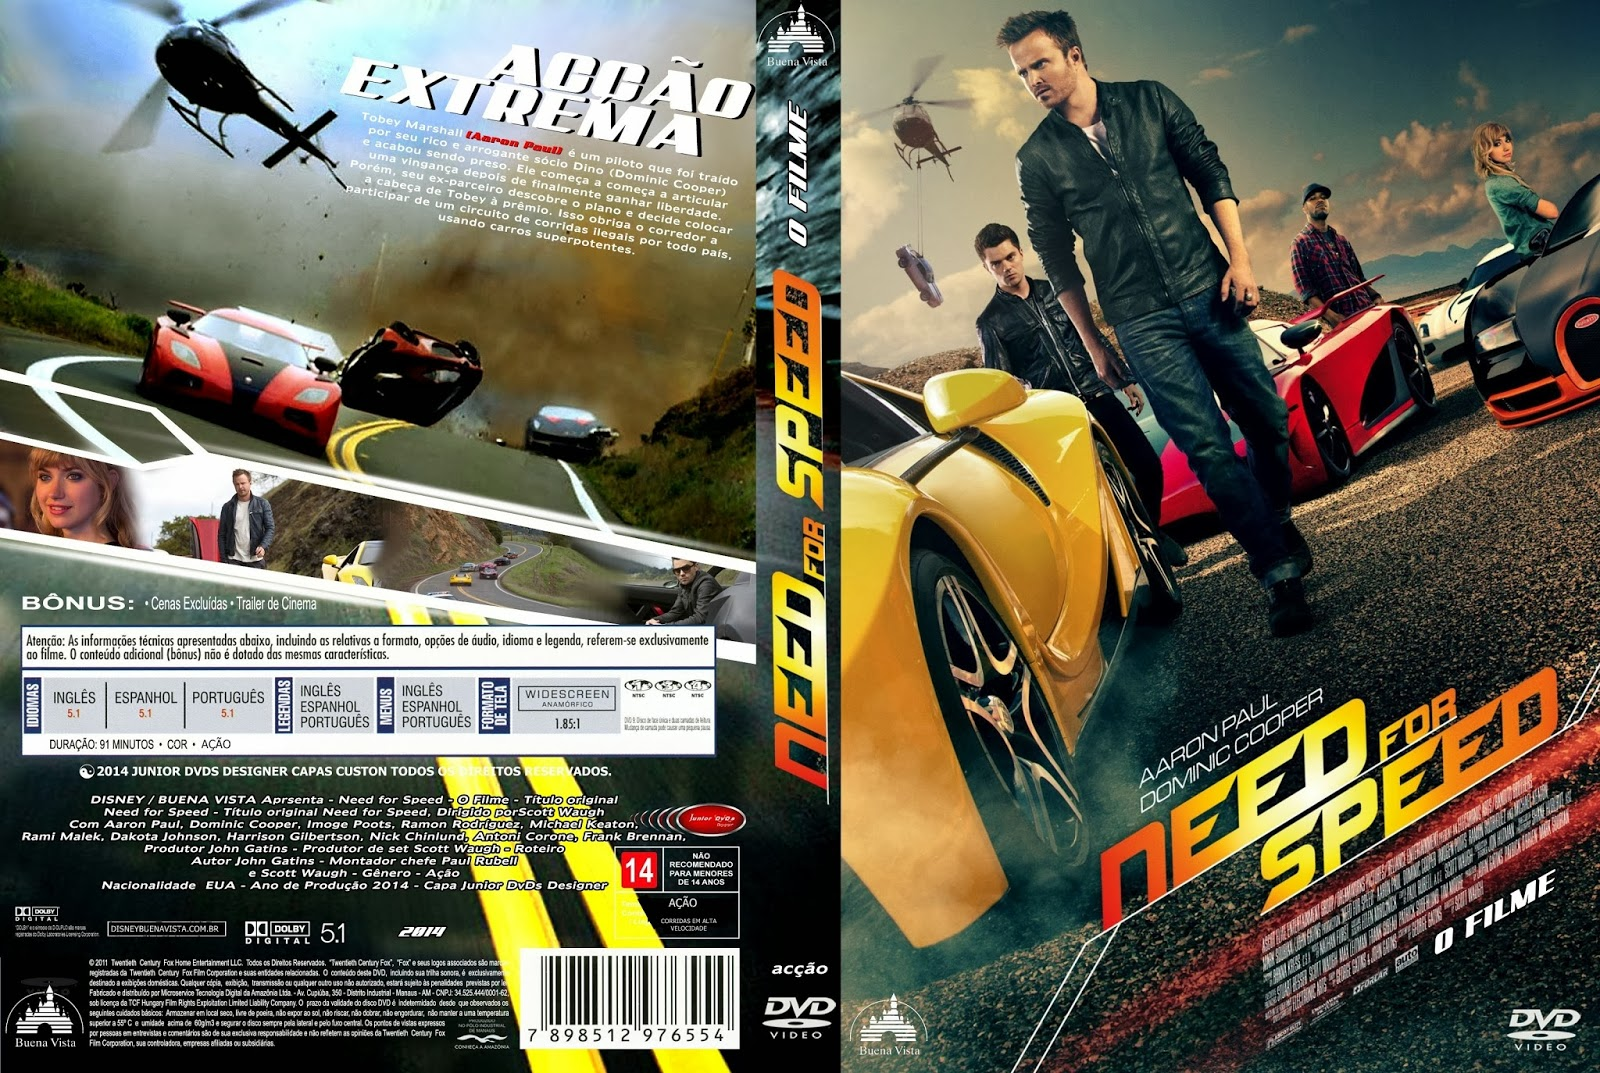 Need for speed o | Need for Speed (2014)  2019-04-10